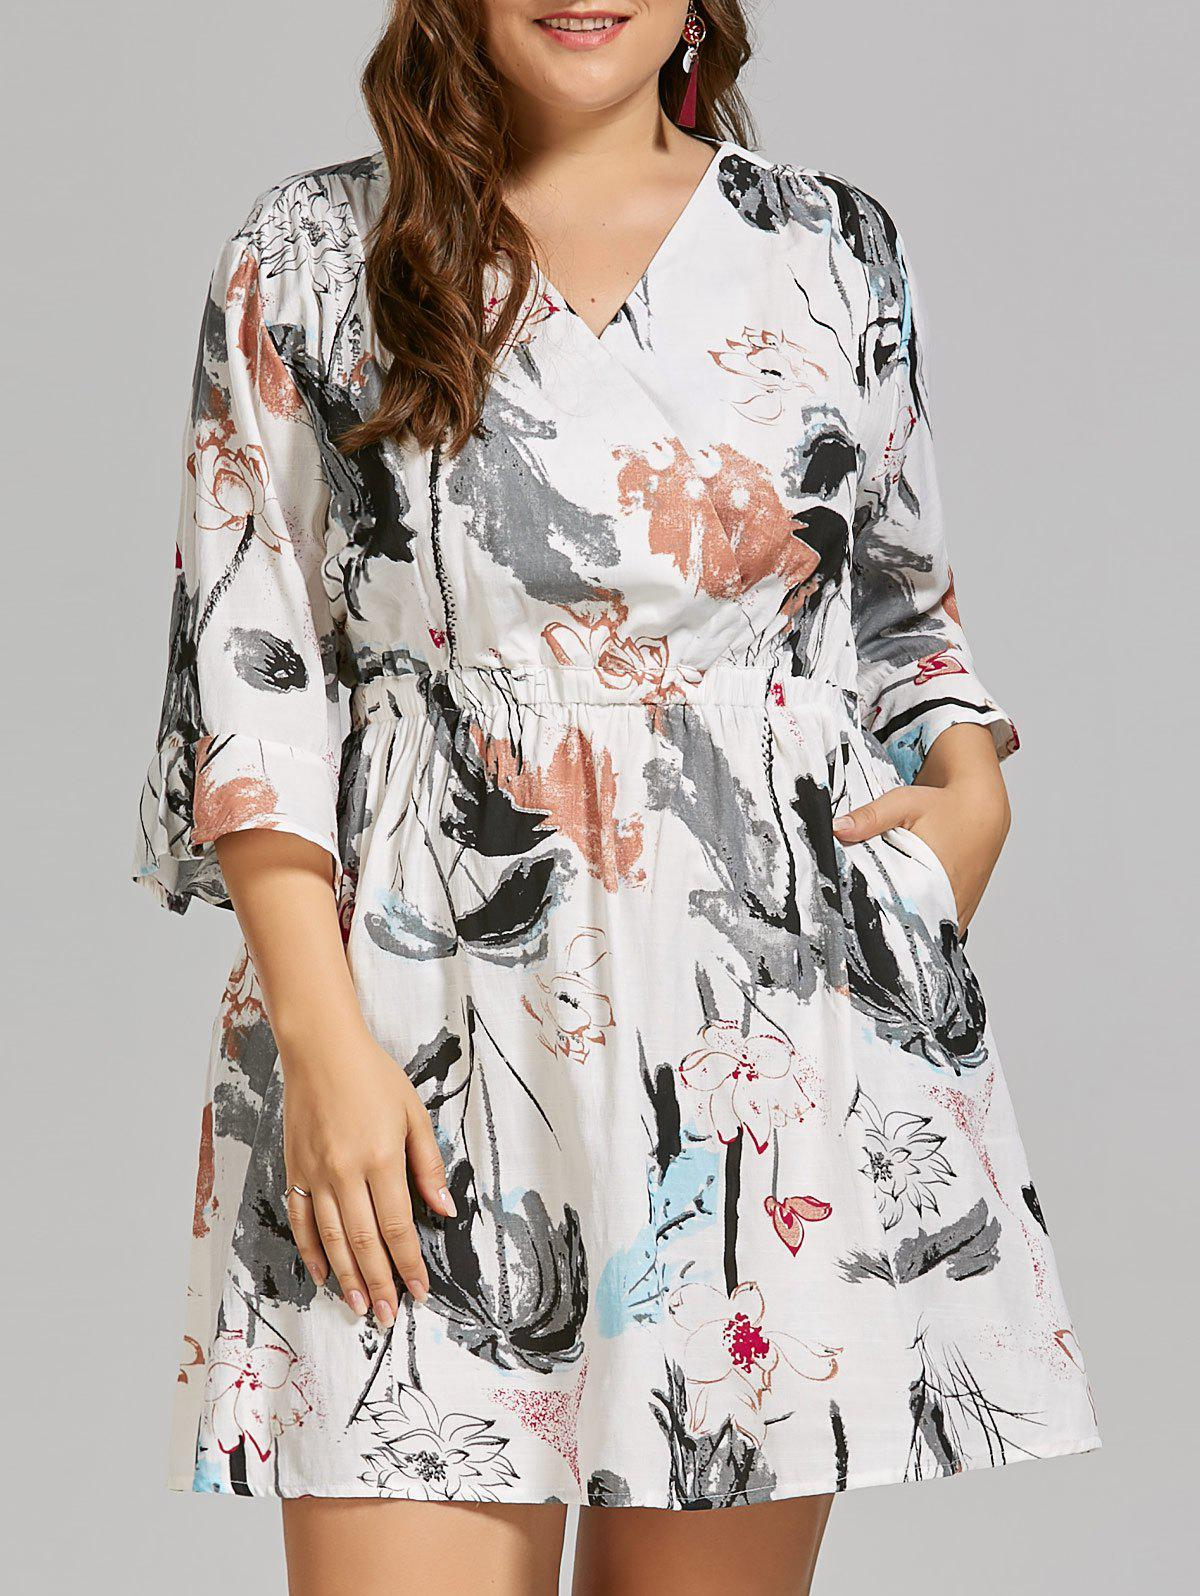 Plus Size Linen Ink Painting  Dress with Flare SleevesWOMEN<br><br>Size: 3XL; Color: WHITE; Style: Casual; Material: Cotton Blend,Linen,Polyester; Silhouette: A-Line; Dresses Length: Mini; Neckline: V-Neck; Sleeve Type: Flare Sleeve; Sleeve Length: 3/4 Length Sleeves; Waist: High Waisted; Embellishment: Adjustable Waist; Pattern Type: Print; With Belt: No; Season: Spring,Summer; Weight: 0.3000kg; Package Contents: 1 x Dress;